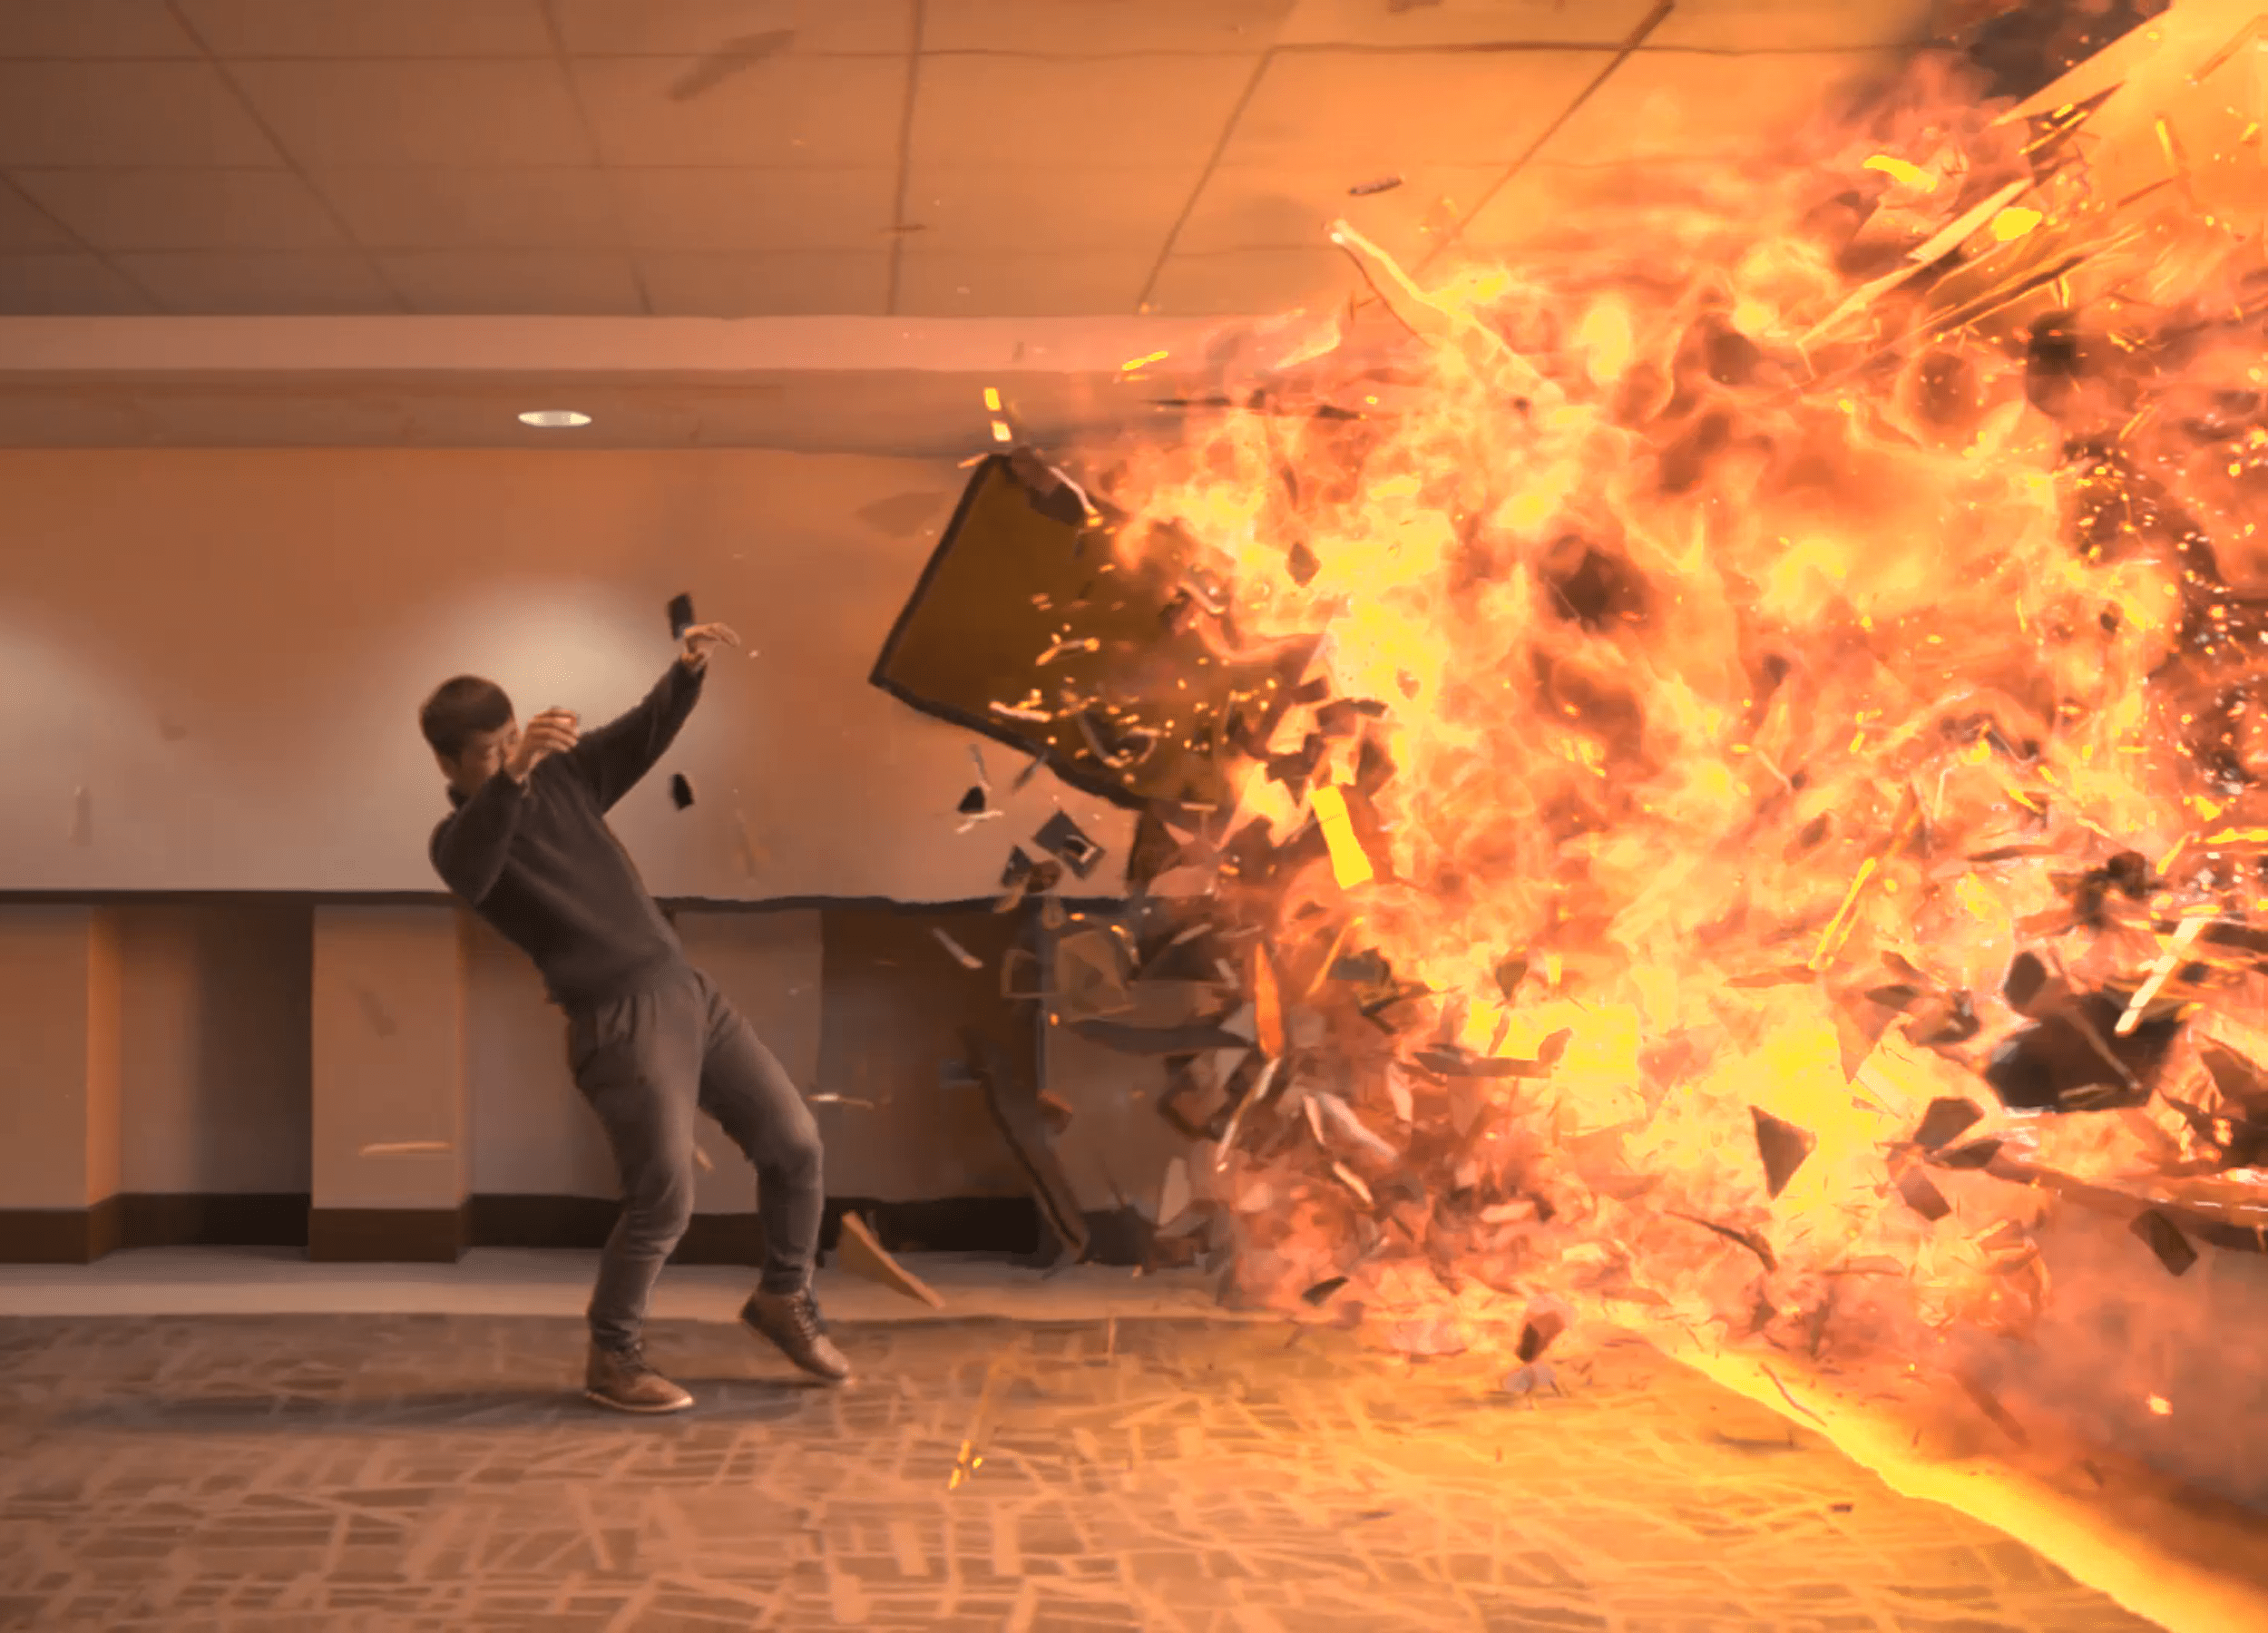 Visual effects animation of a man being thrown backwards from a fiery explosion